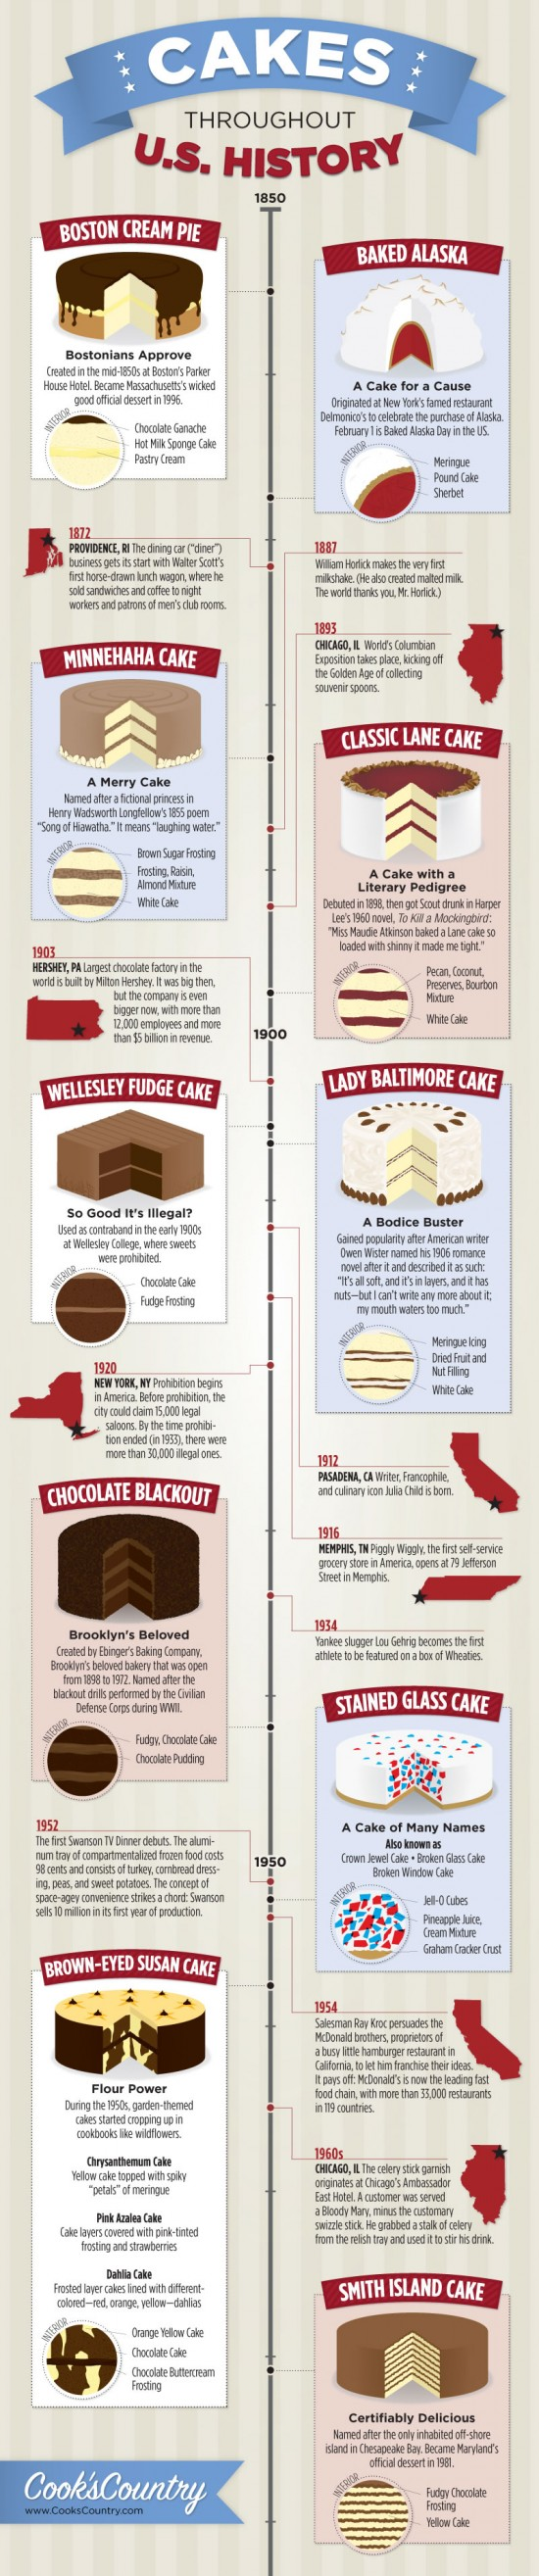 A History About Cakes